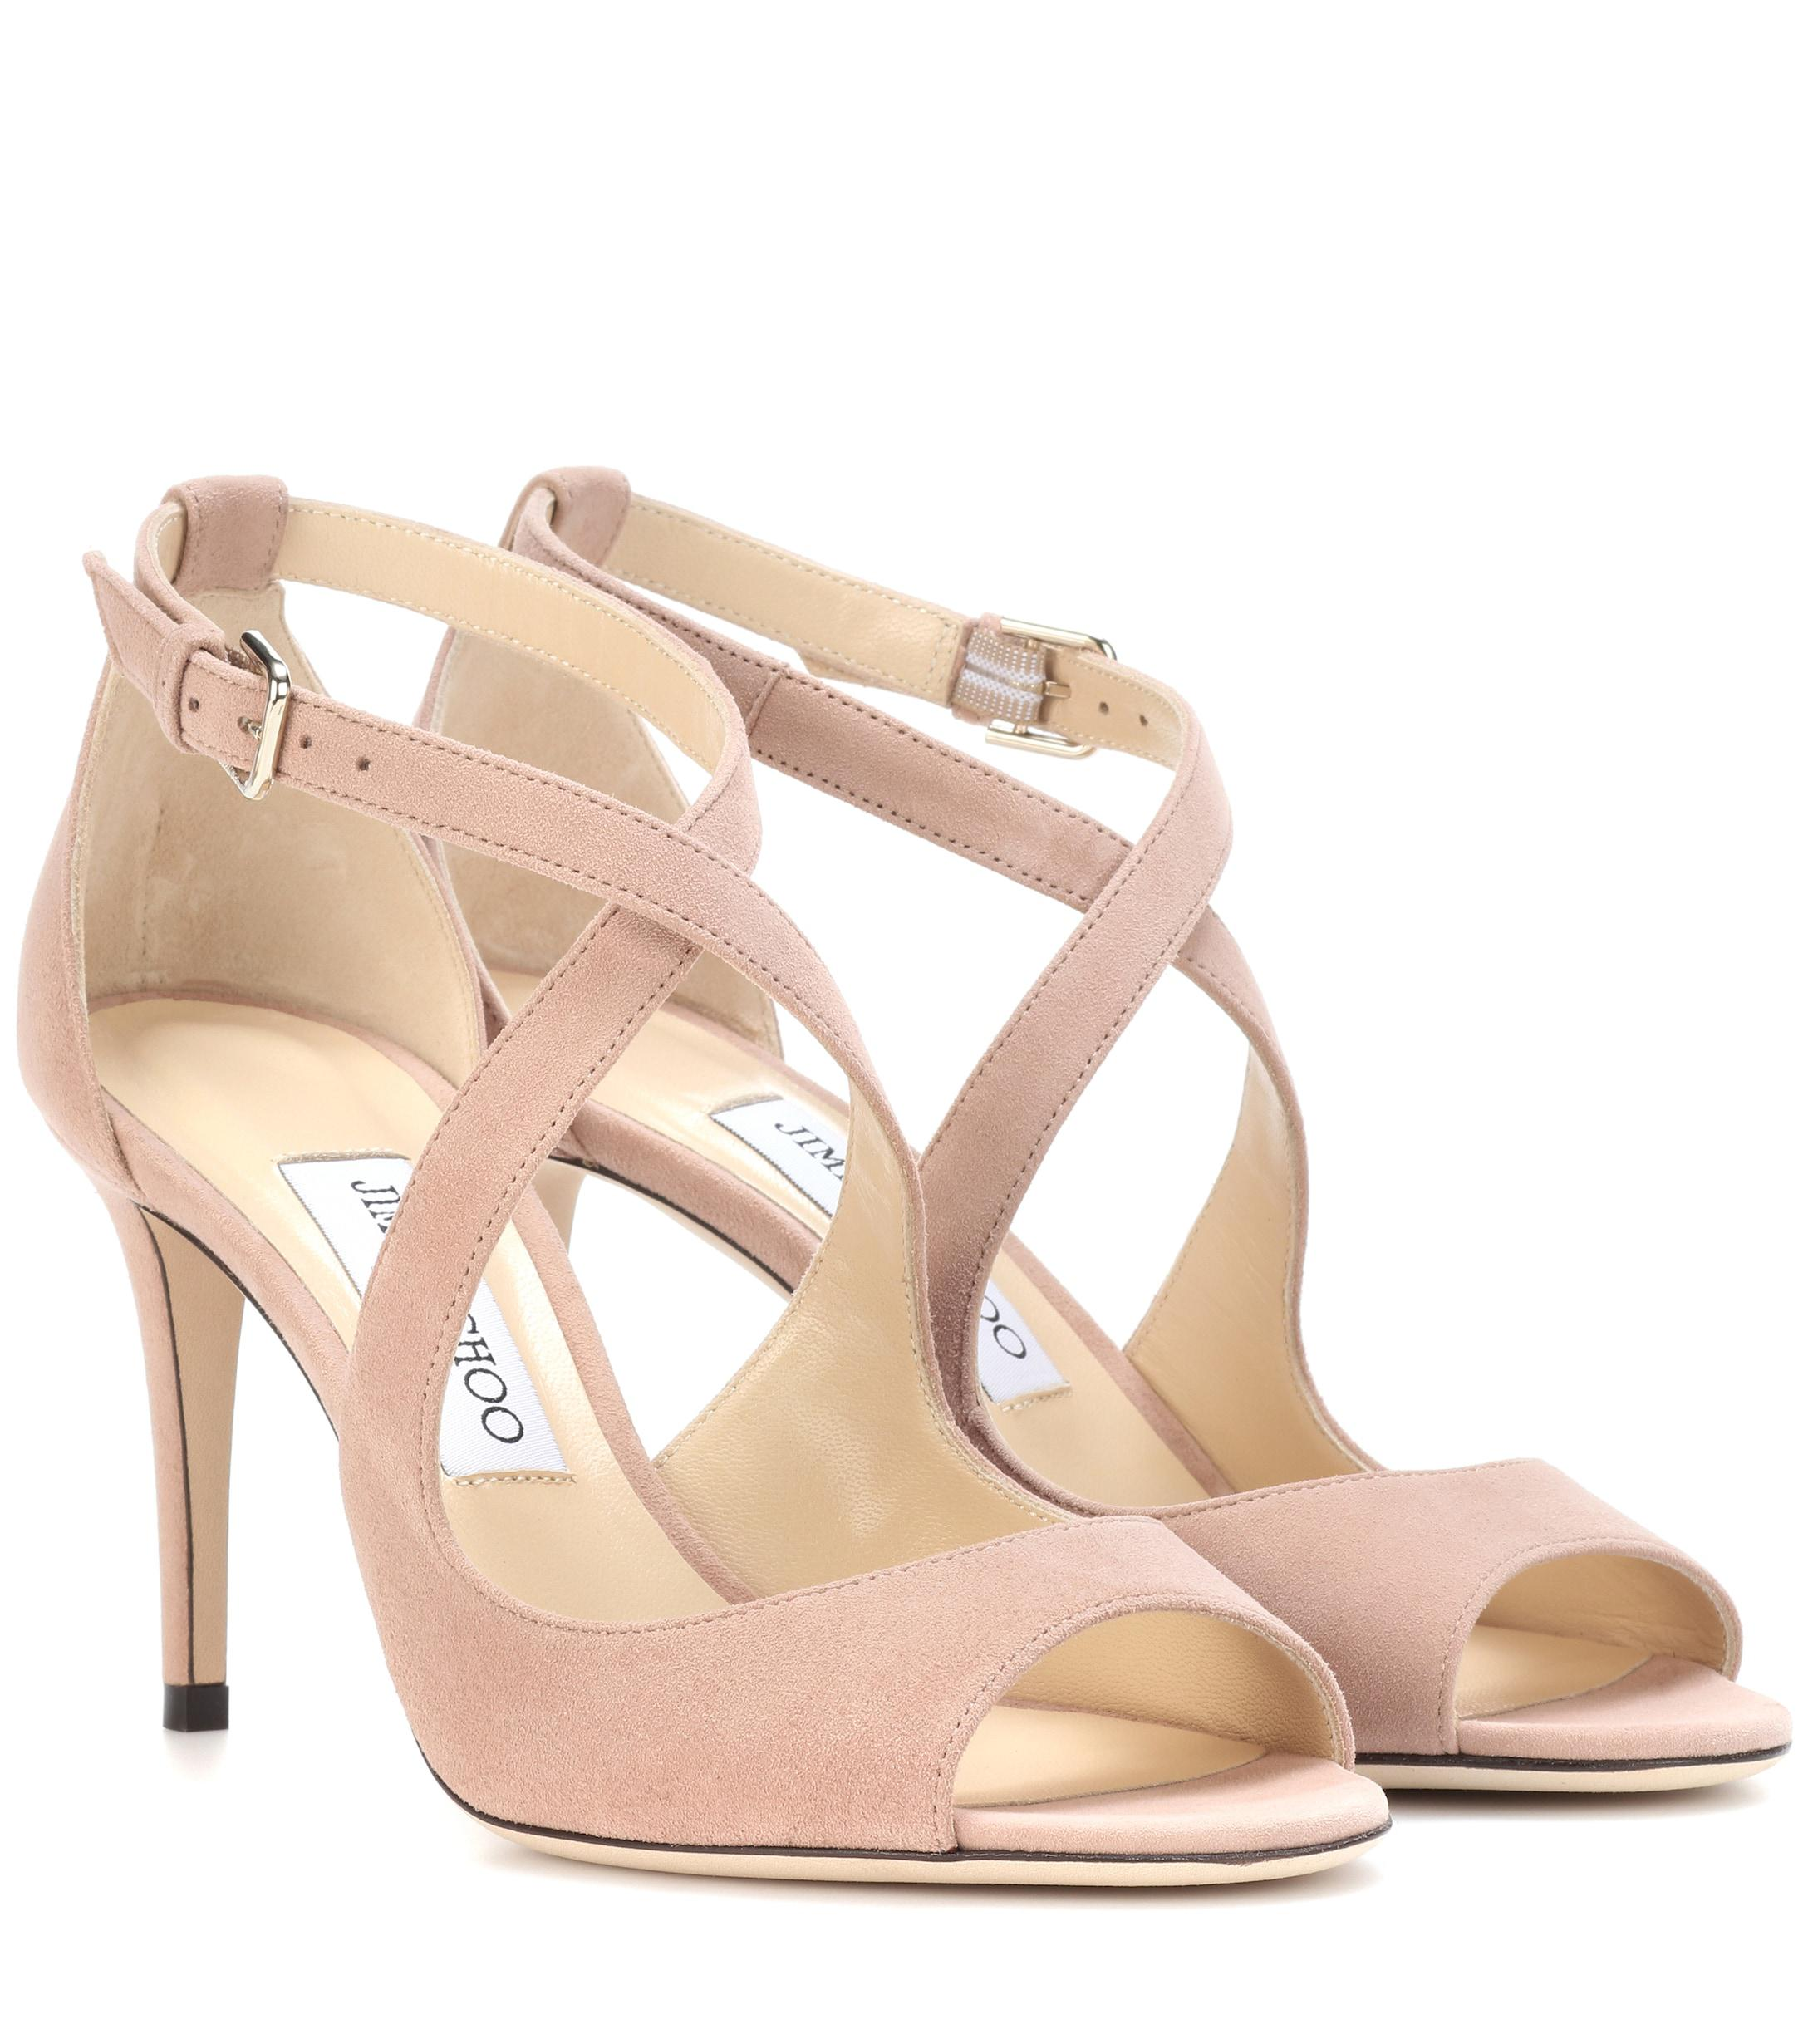 040aba7763a9 Lyst - Jimmy Choo Emily 85 Suede Sandals in Pink